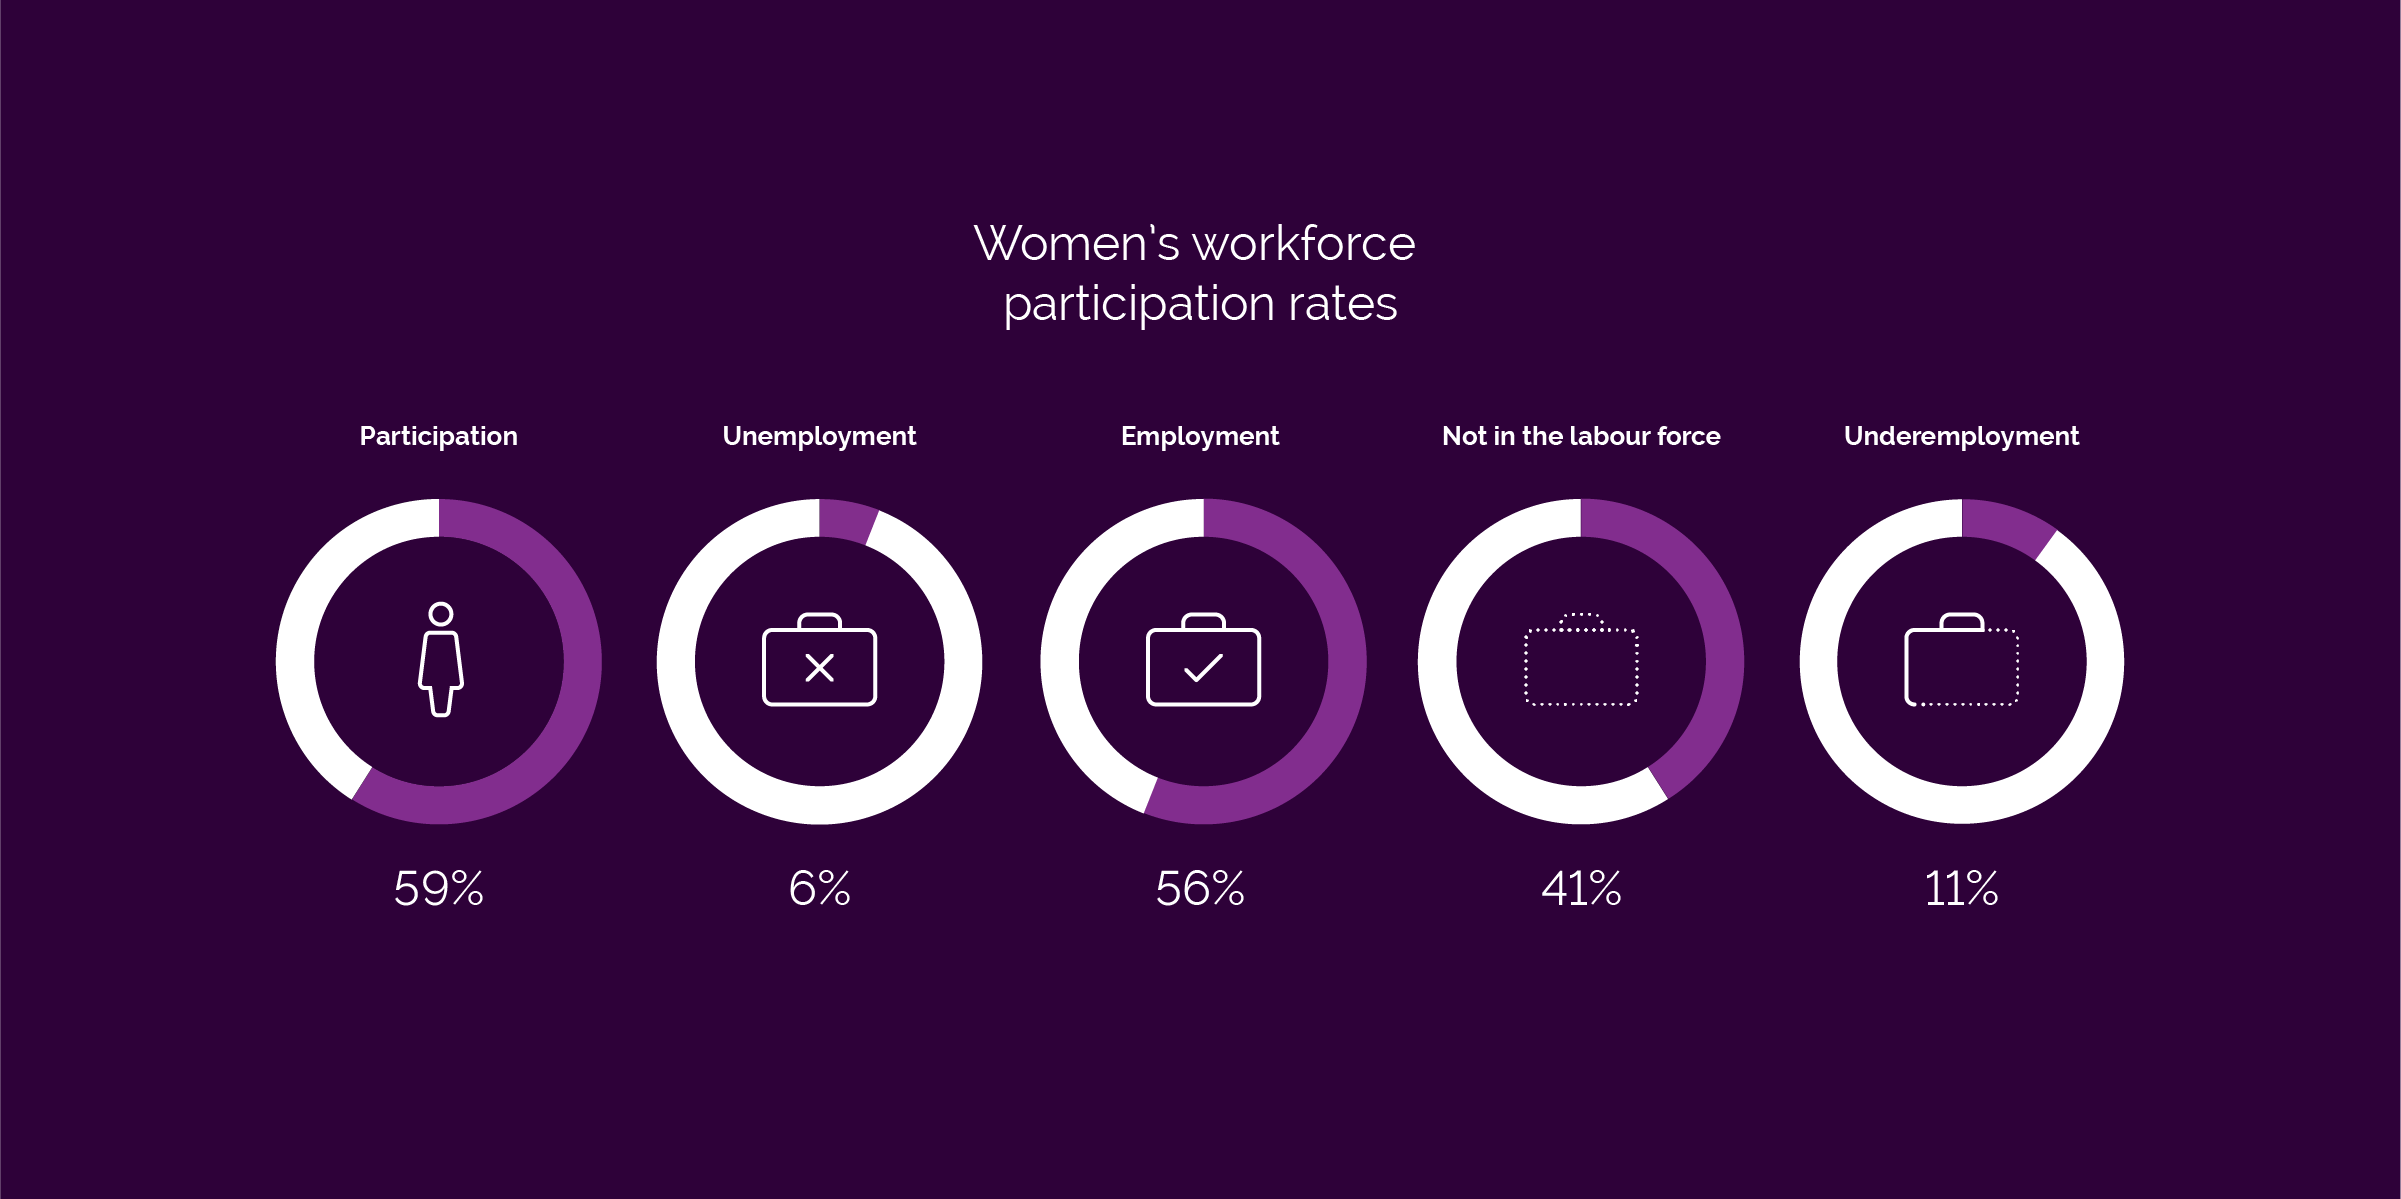 Women's workforce participation rates